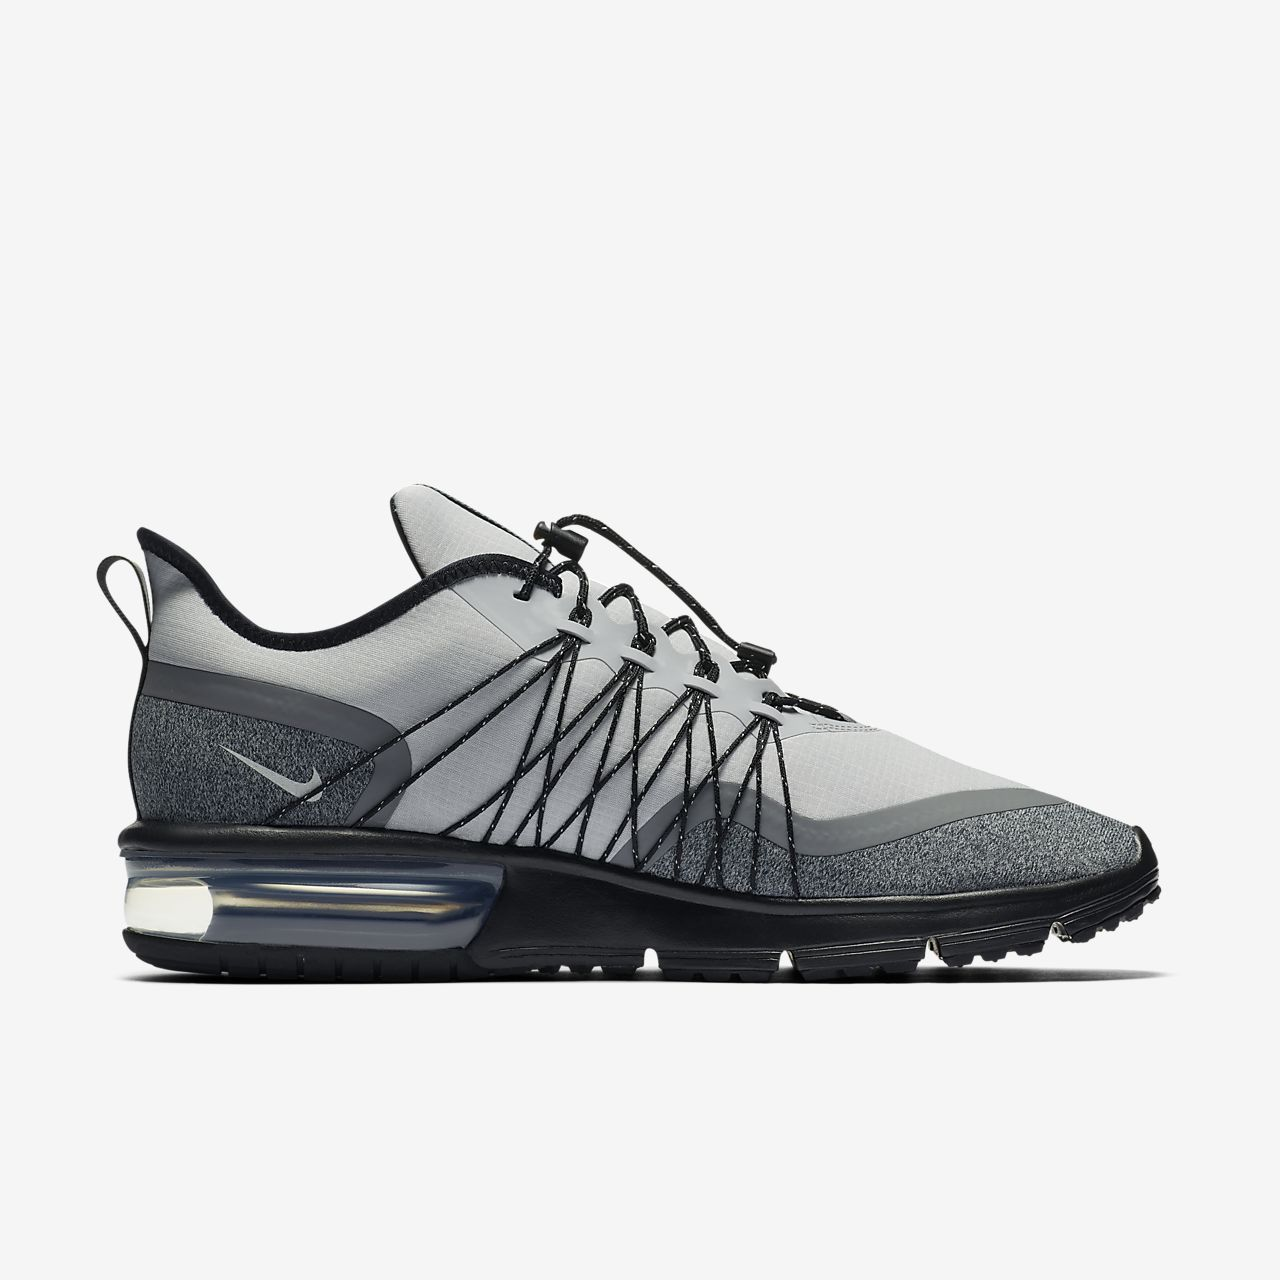 9124722646d Nike Air Max Sequent 4 Shield Men s Shoe. Nike.com ID